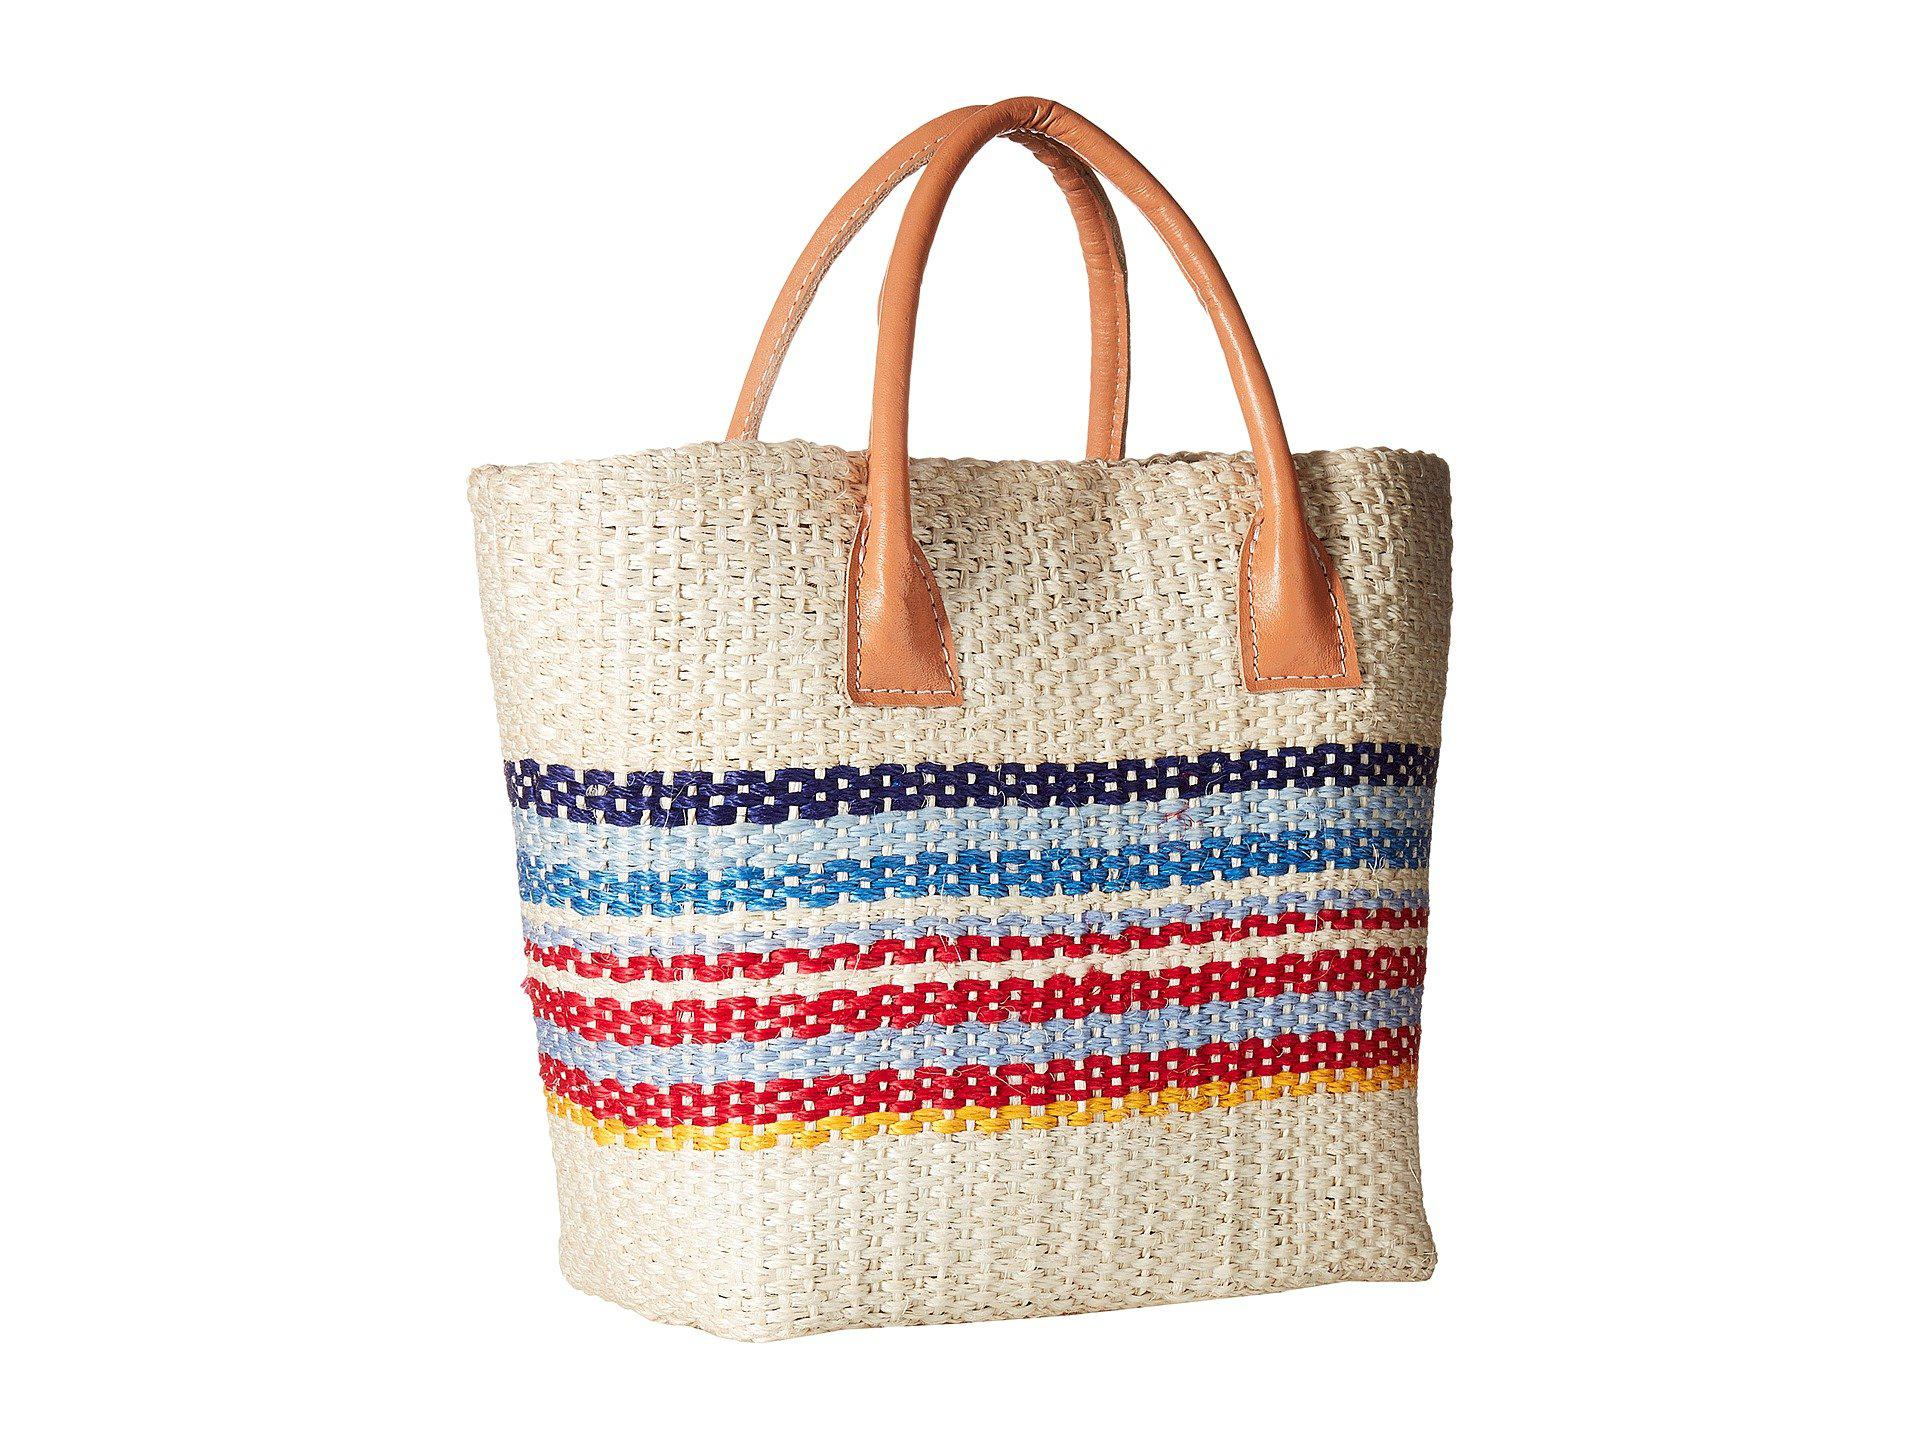 Small Provence Tote in Tan Hat Attack qq2iUjaax